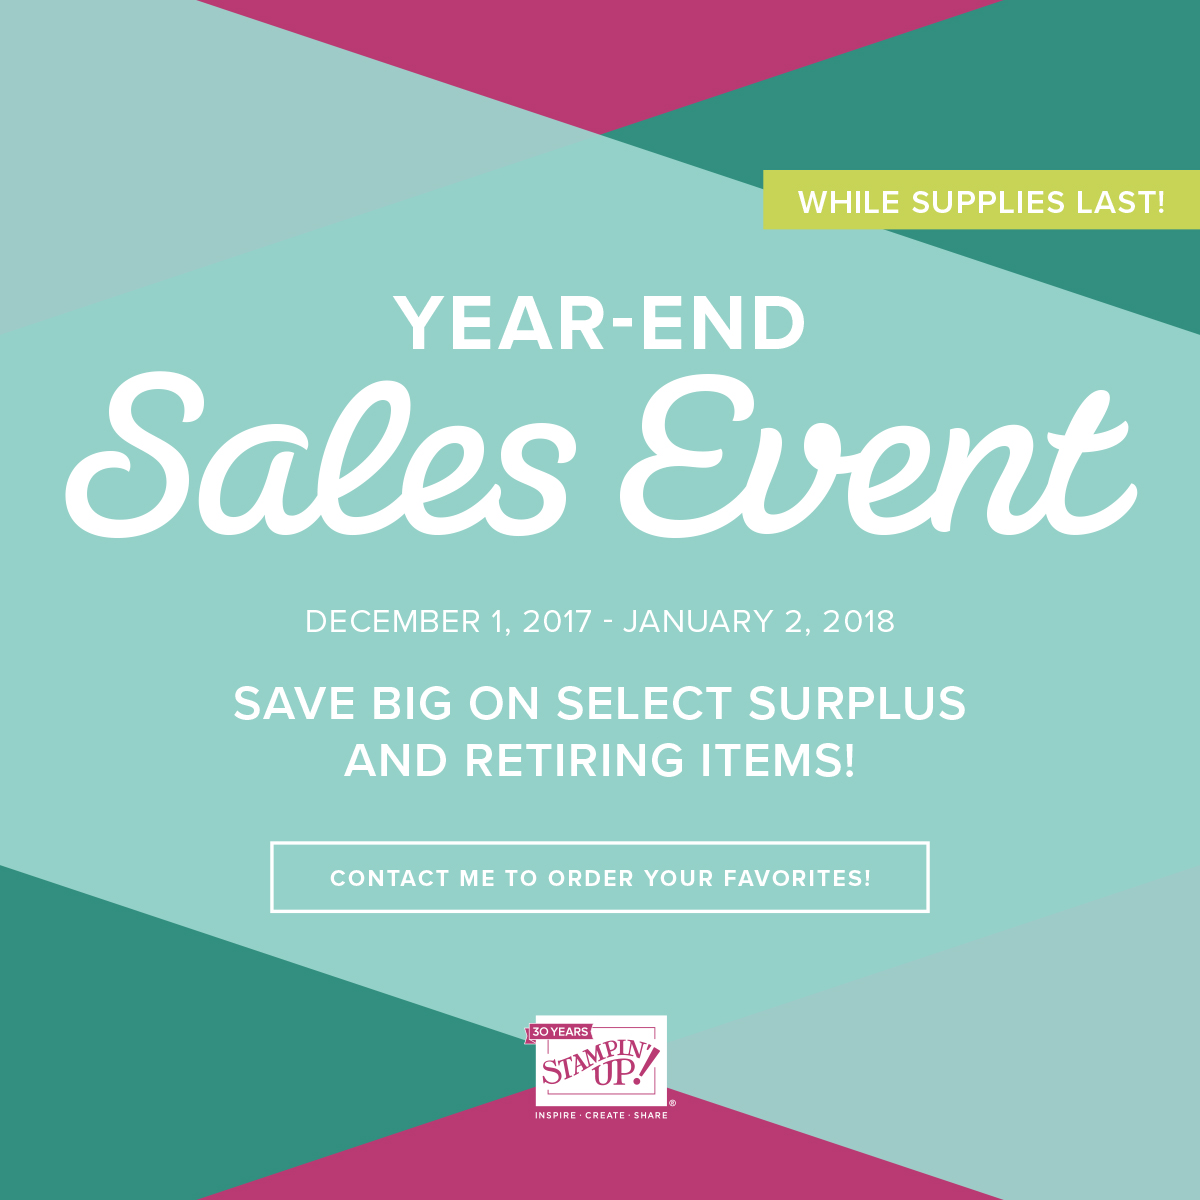 YEAR-END SALES EVENT!